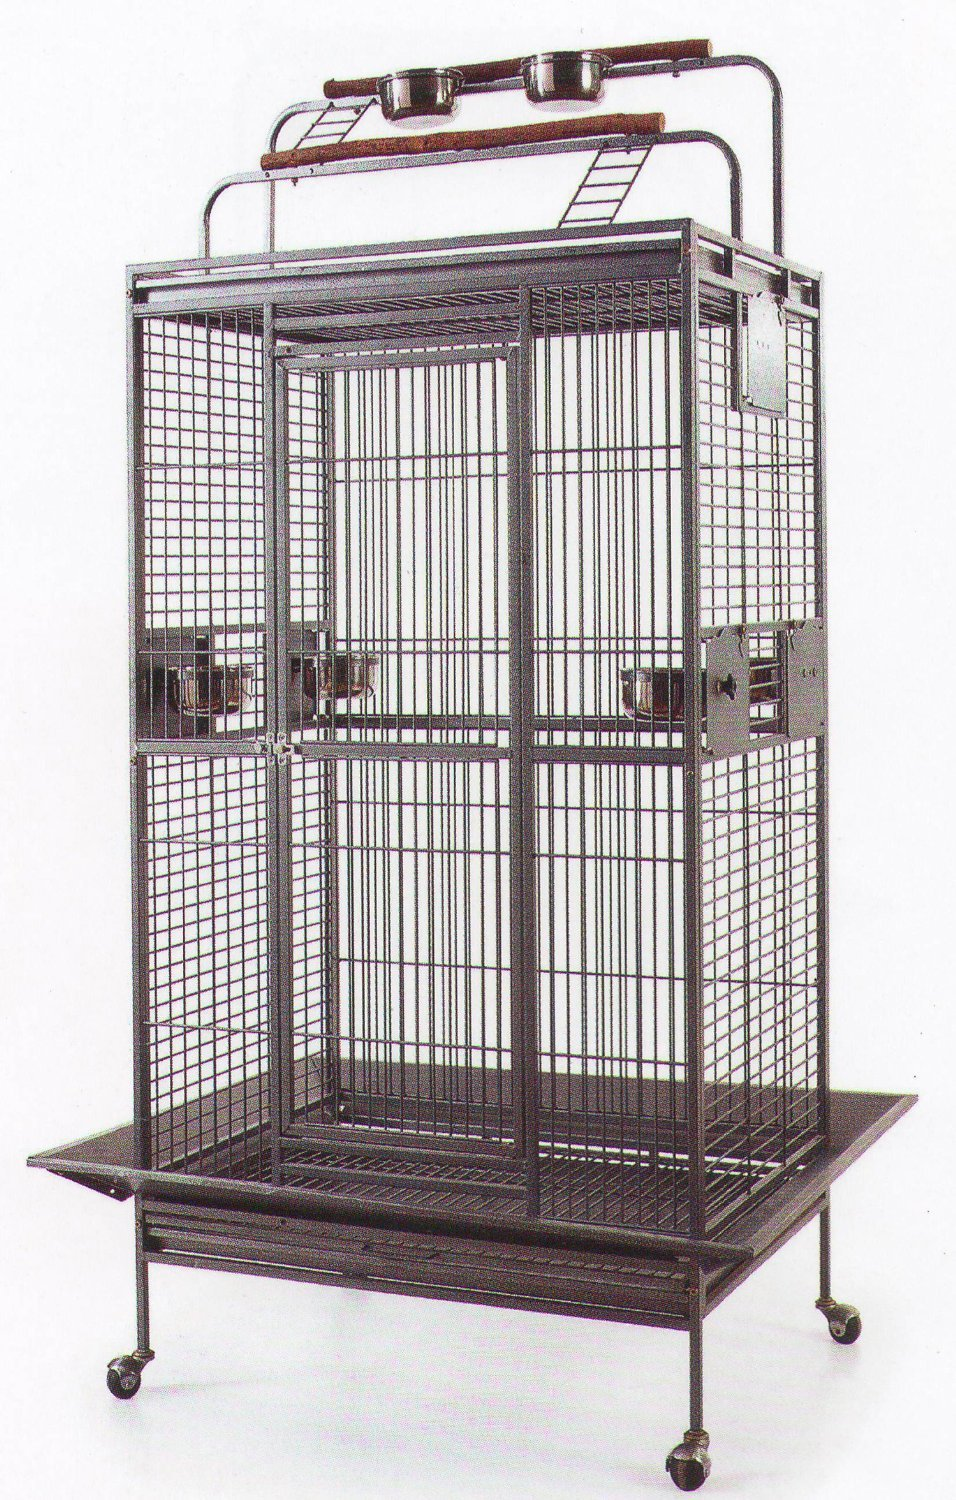 New Large Wrought Iron Bird Parrot Cage Double Ladders Open/Close Play Top, Include Seed Guard and Play Top *Black Hammertone* Mcage